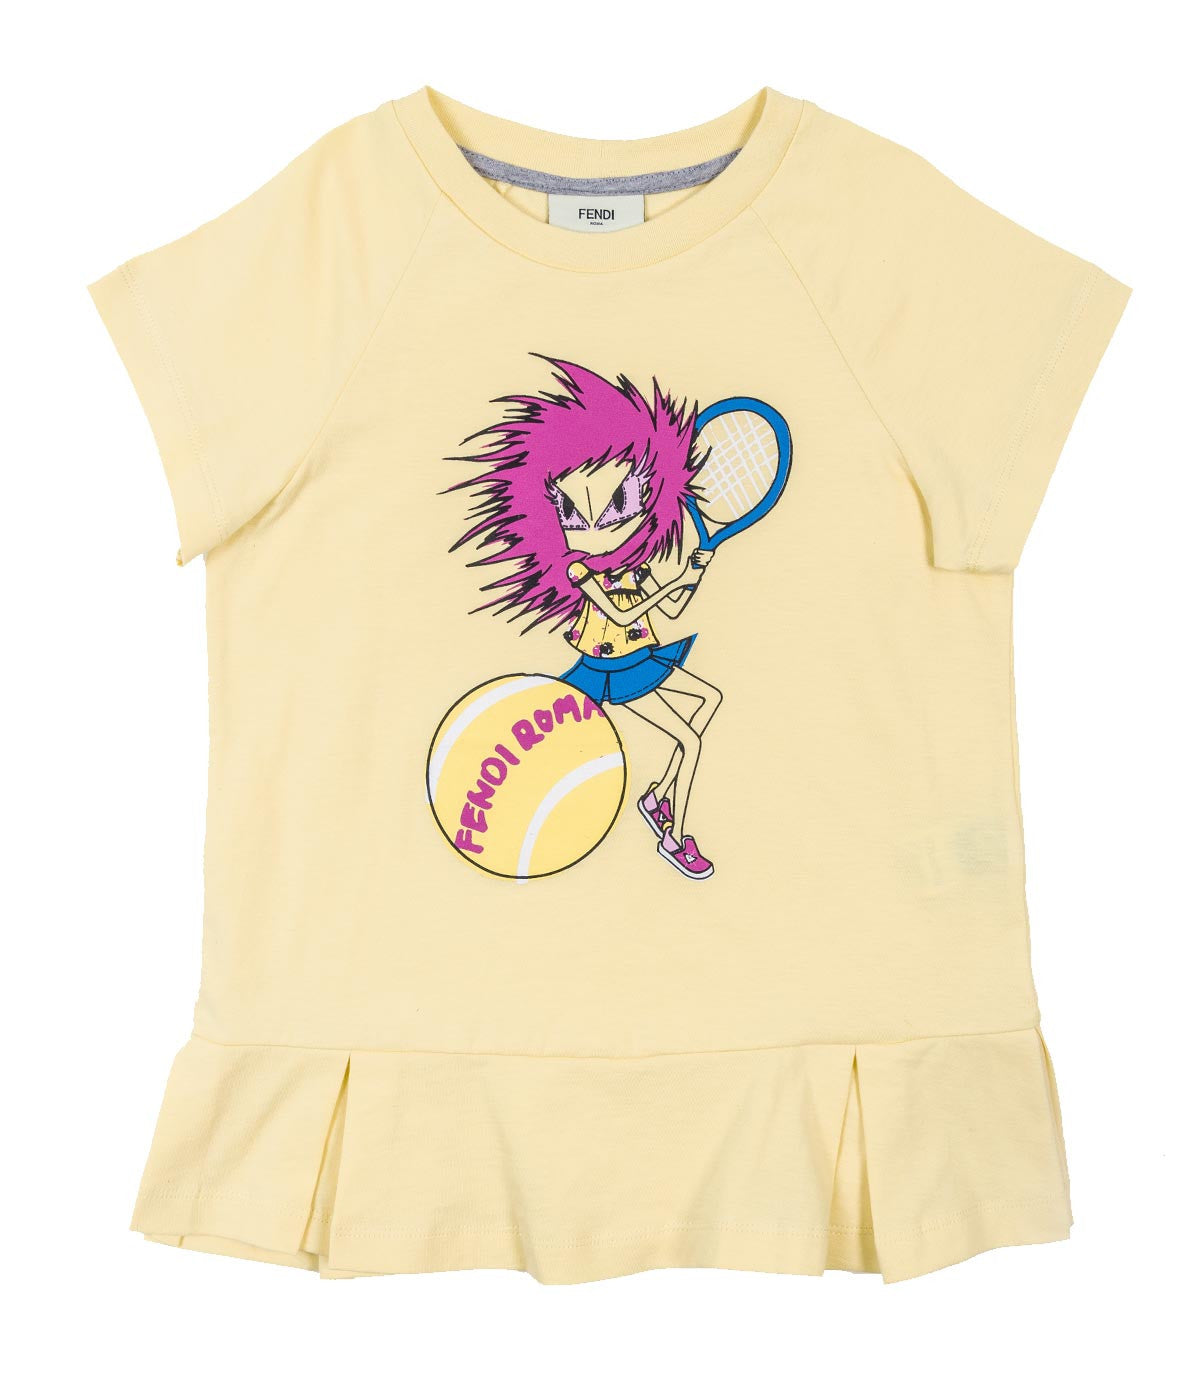 Girls Short Sleeve T-shirt With Tennis Graphic